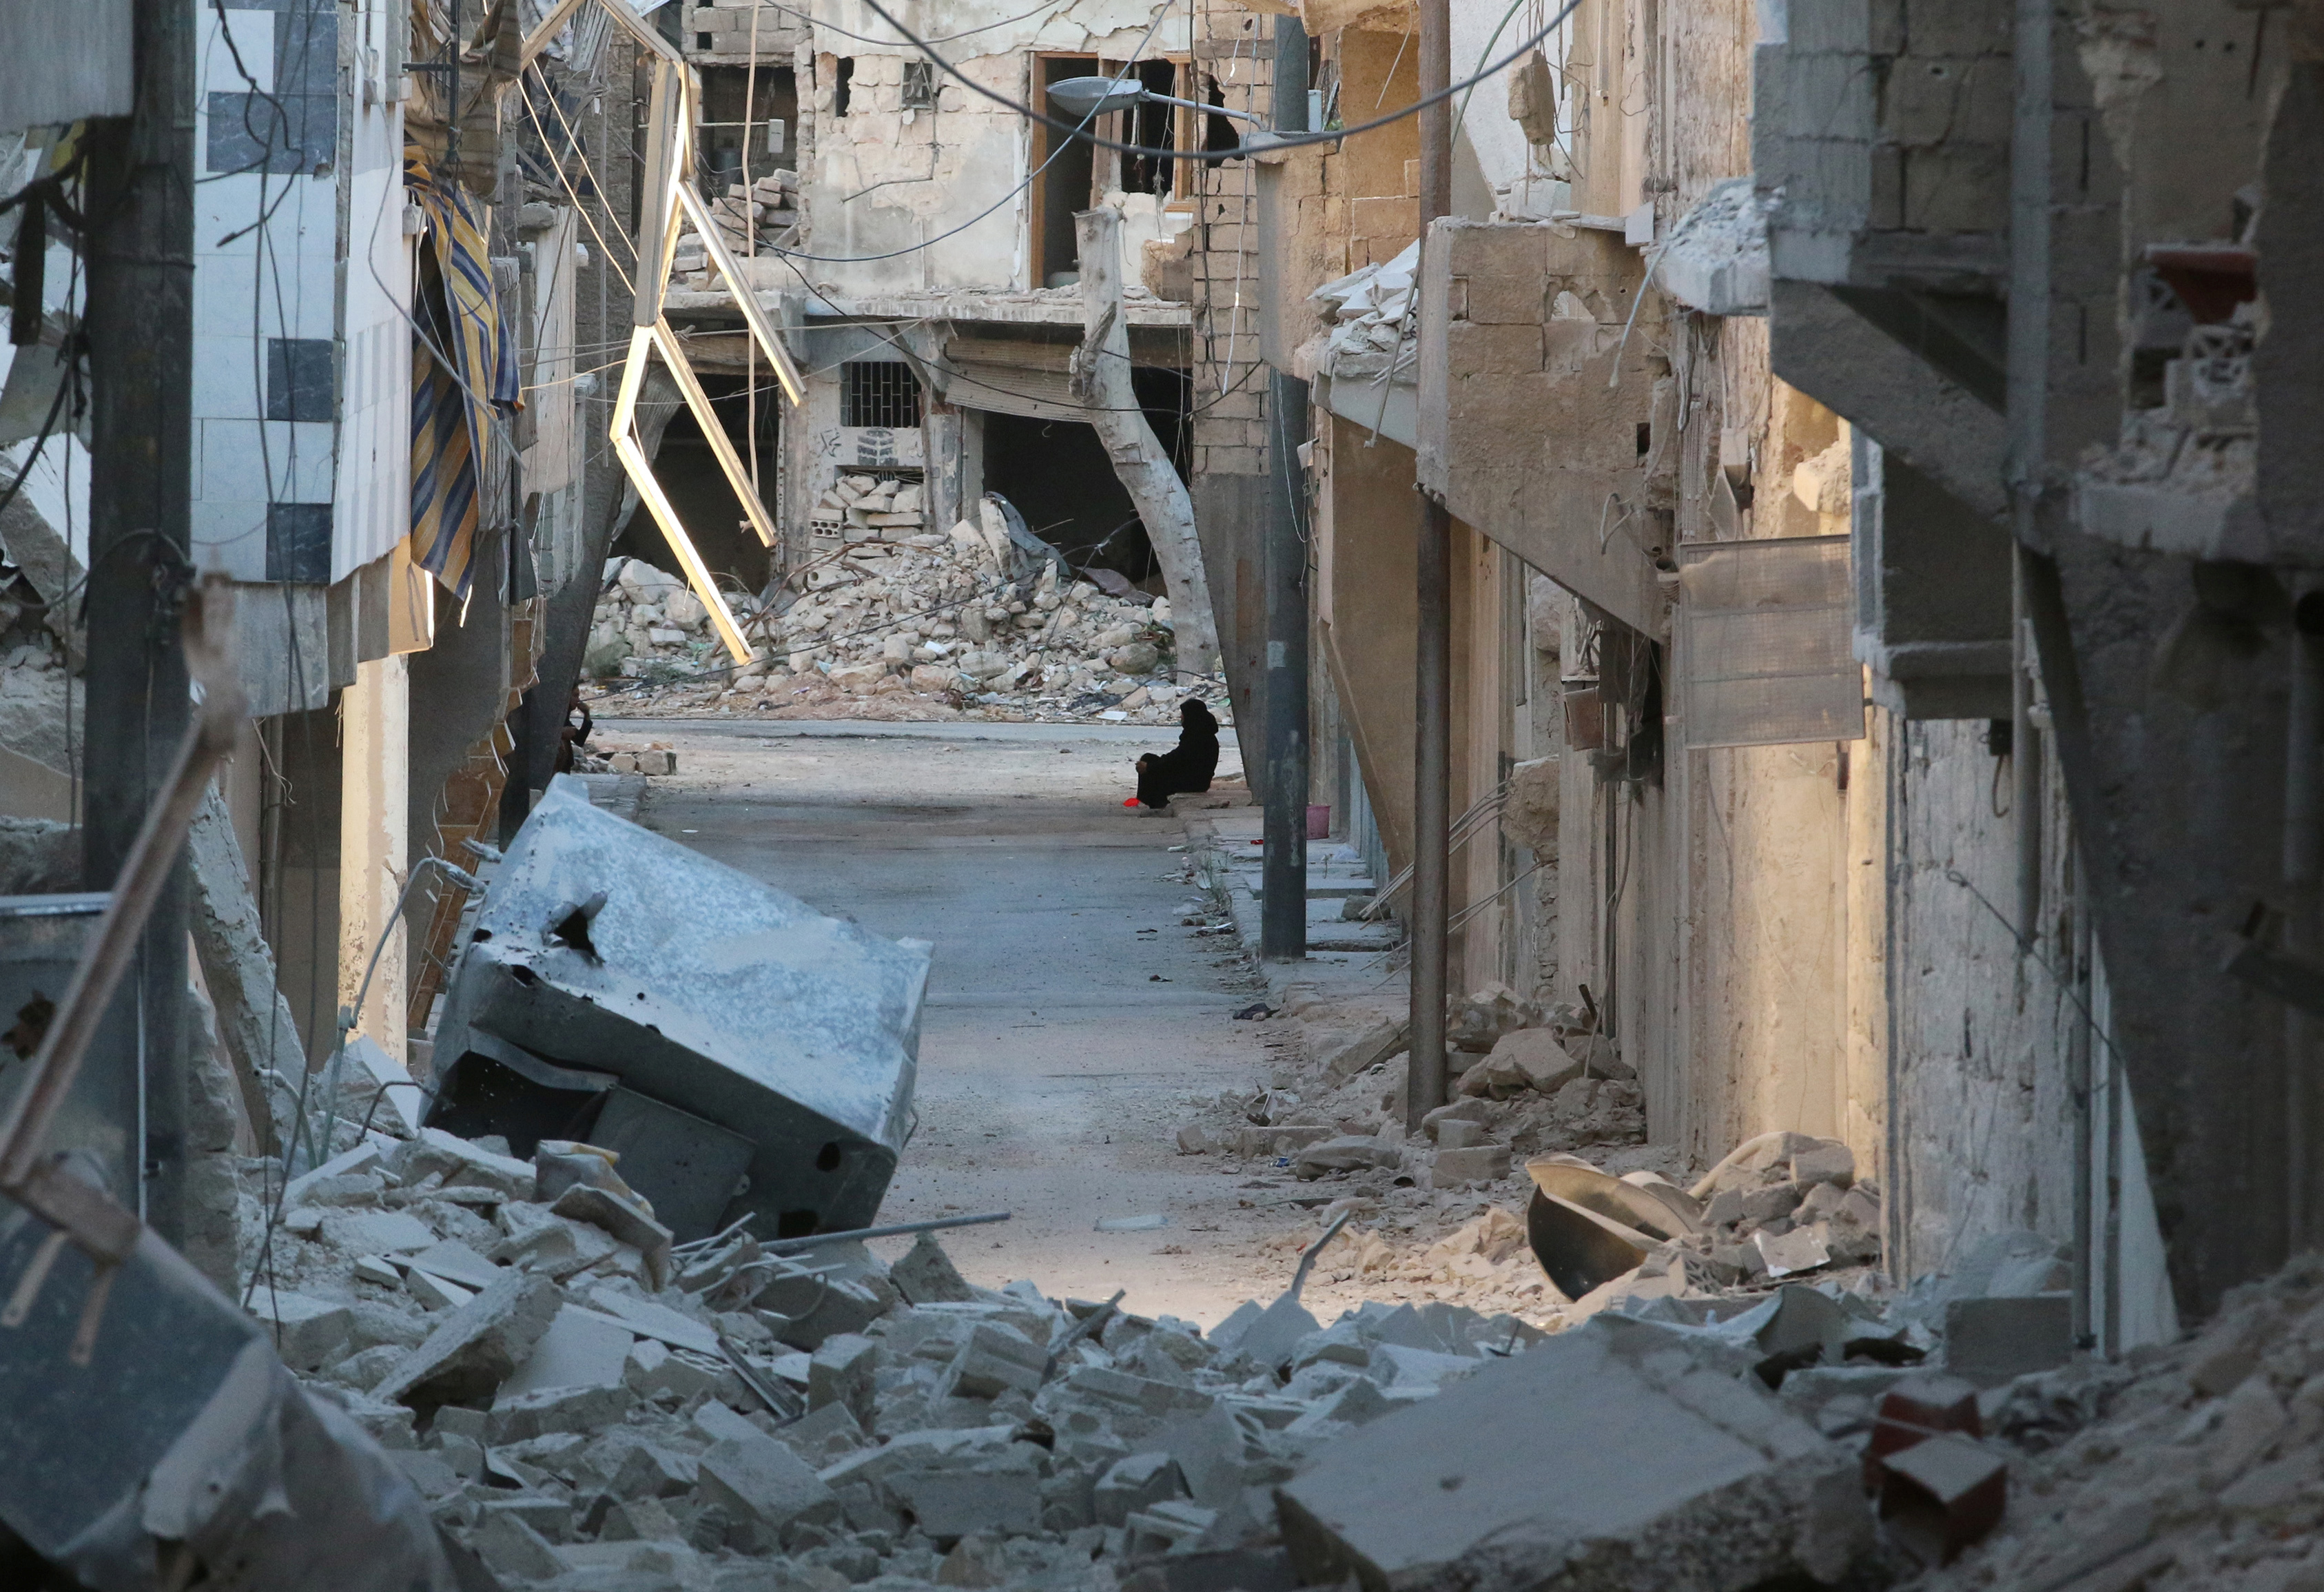 A woman sits amid damaged buildings in the rebel-held al-Myassar neighborhood of Aleppo, Syria, on Sept. 27, 2016